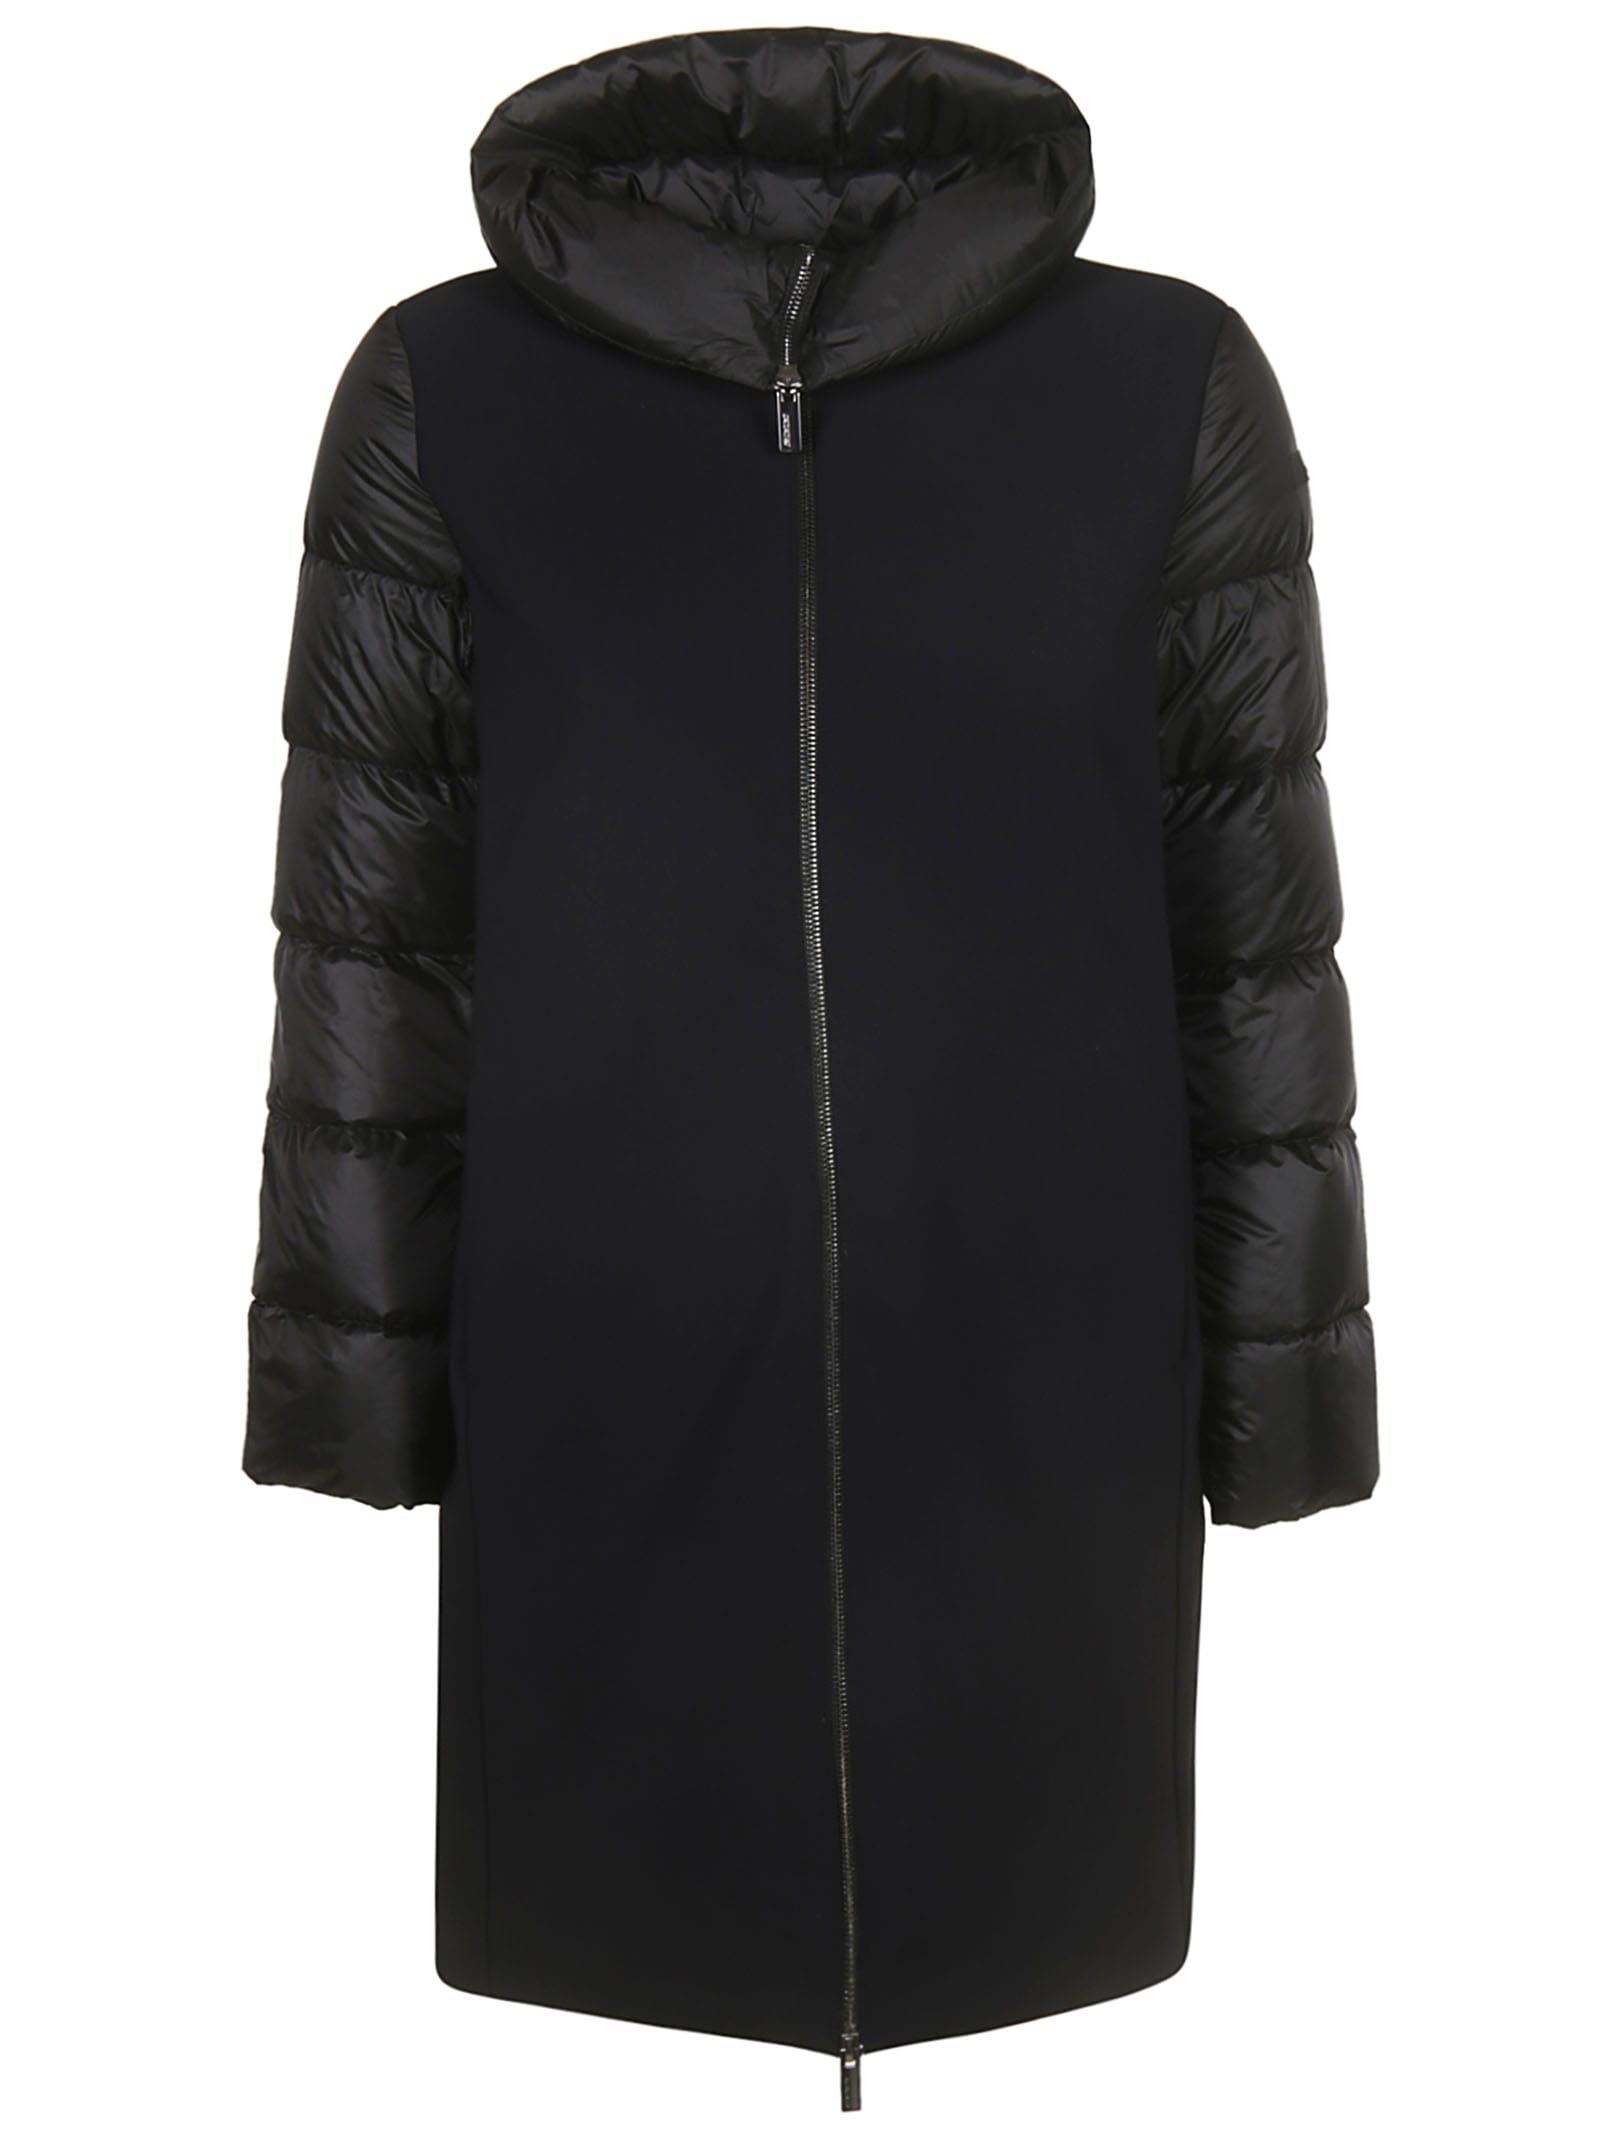 RRD – Roberto Ricci Design Winter Hybrid Padded Sleeve Coat